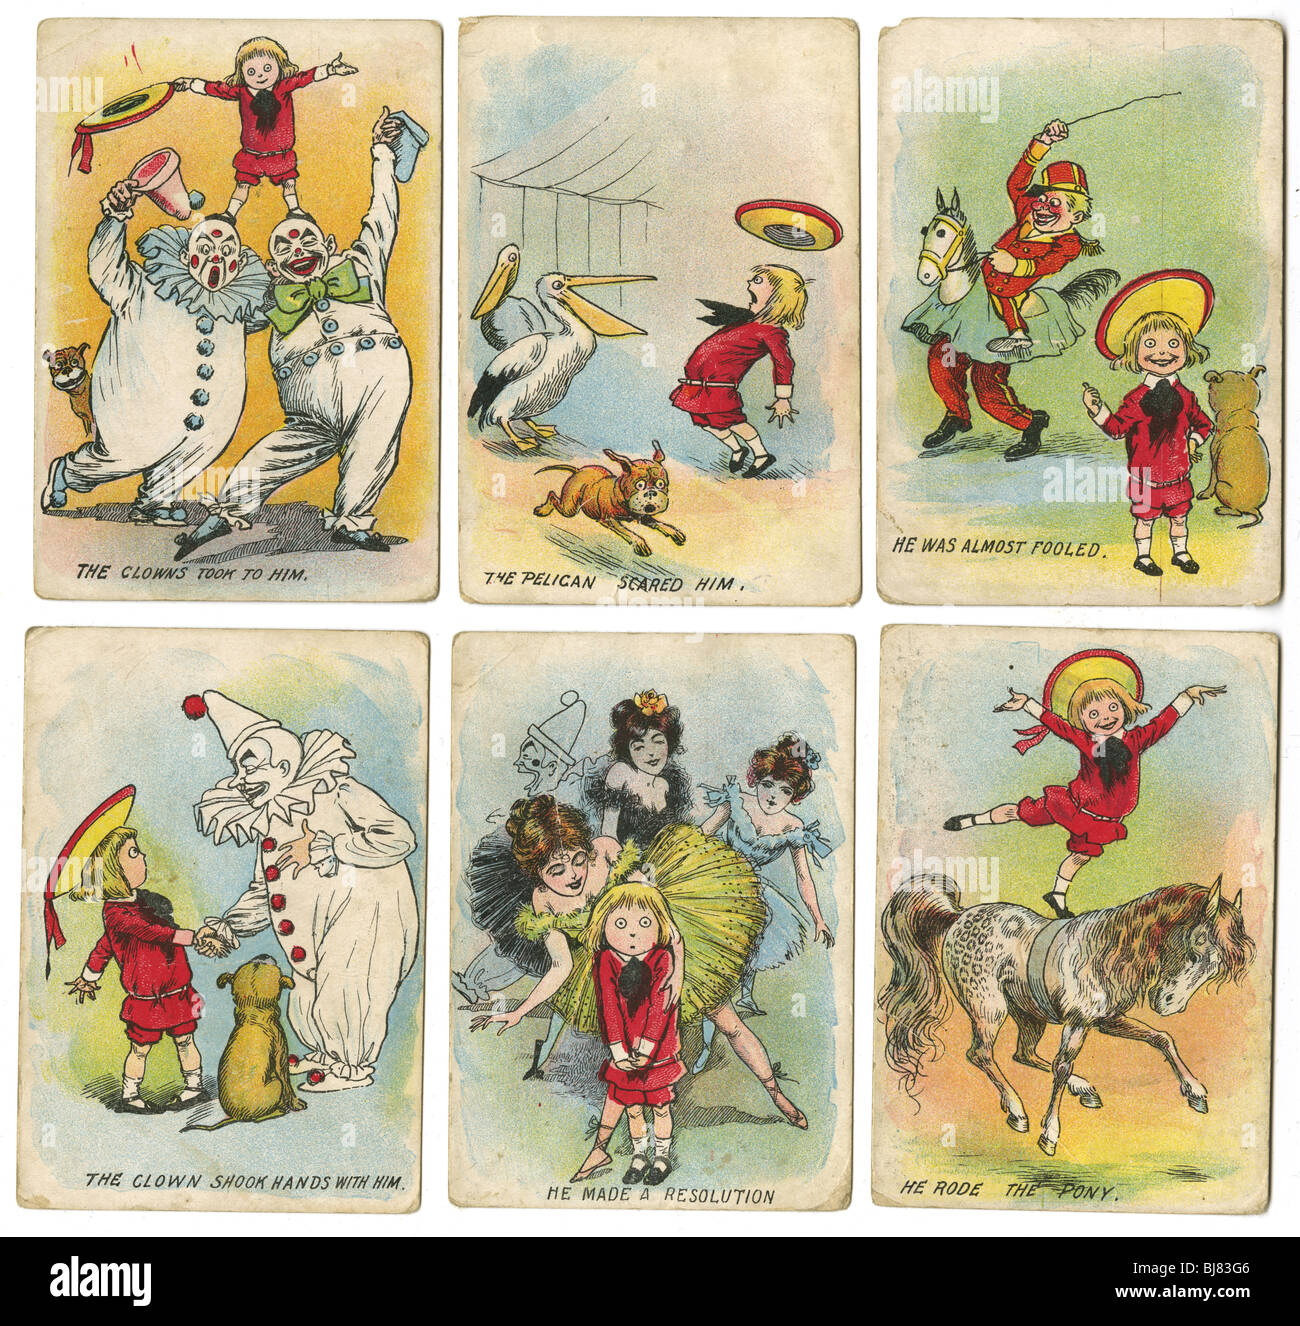 Six circa 1904 'Buster Brown at the Circus' trading cards, with Tige the dog, by R.F. Outcault. - Stock Image